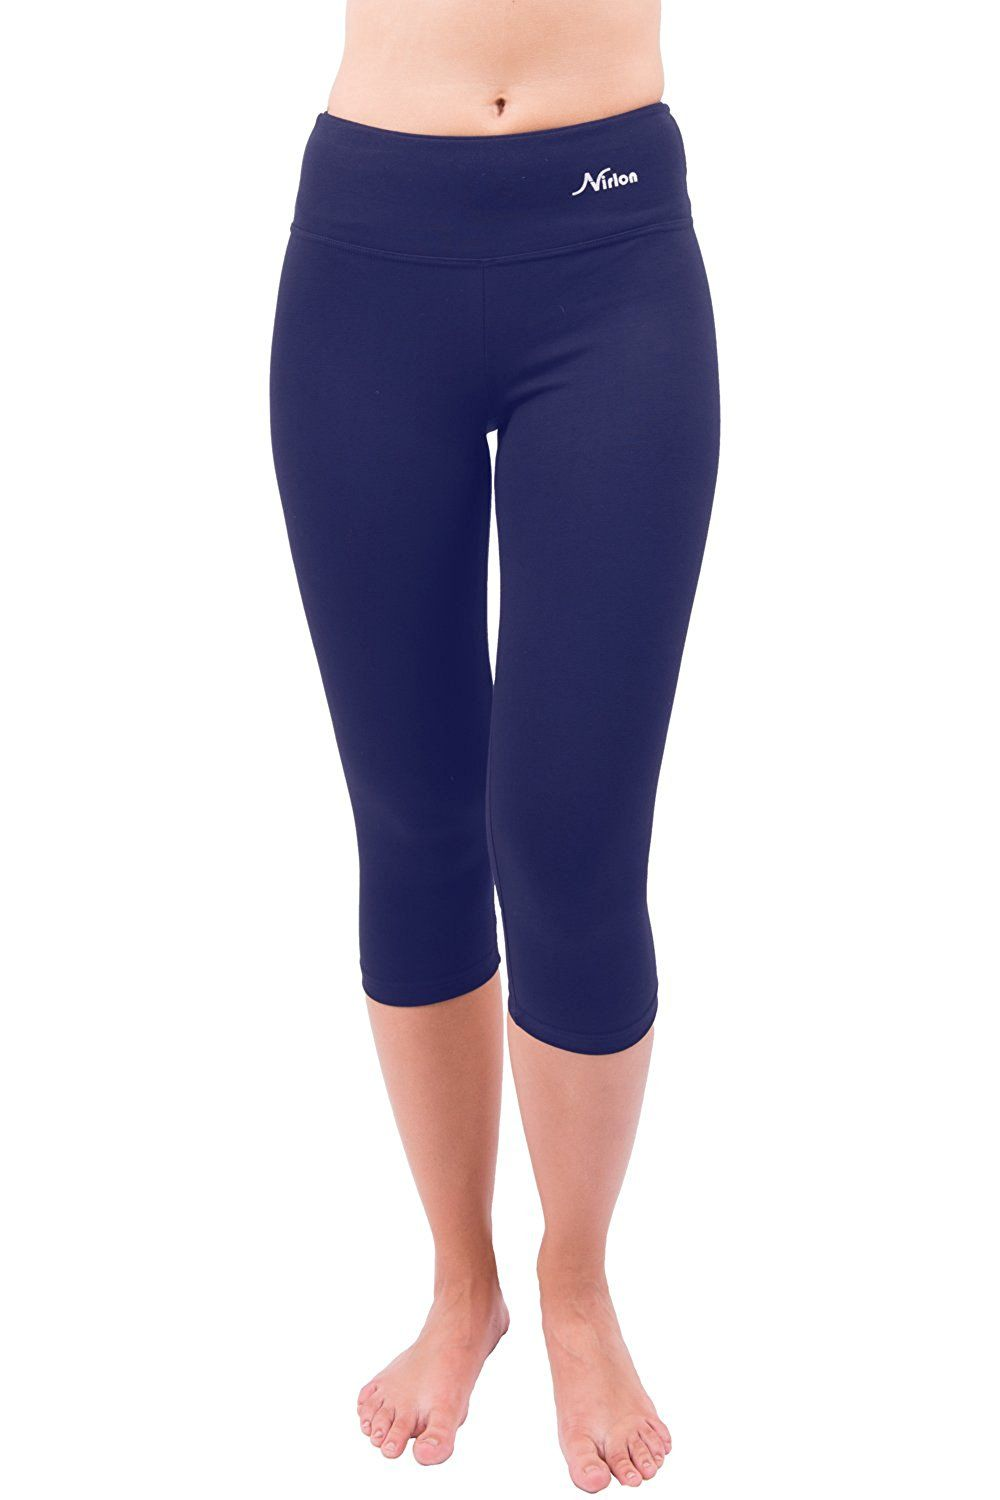 8ee4611d6fa751 Yoga Pants Capri's for Women Best Cropped Leggings Athletic Running Jogging  Workout & Sport Cotton Spandex: Clothing